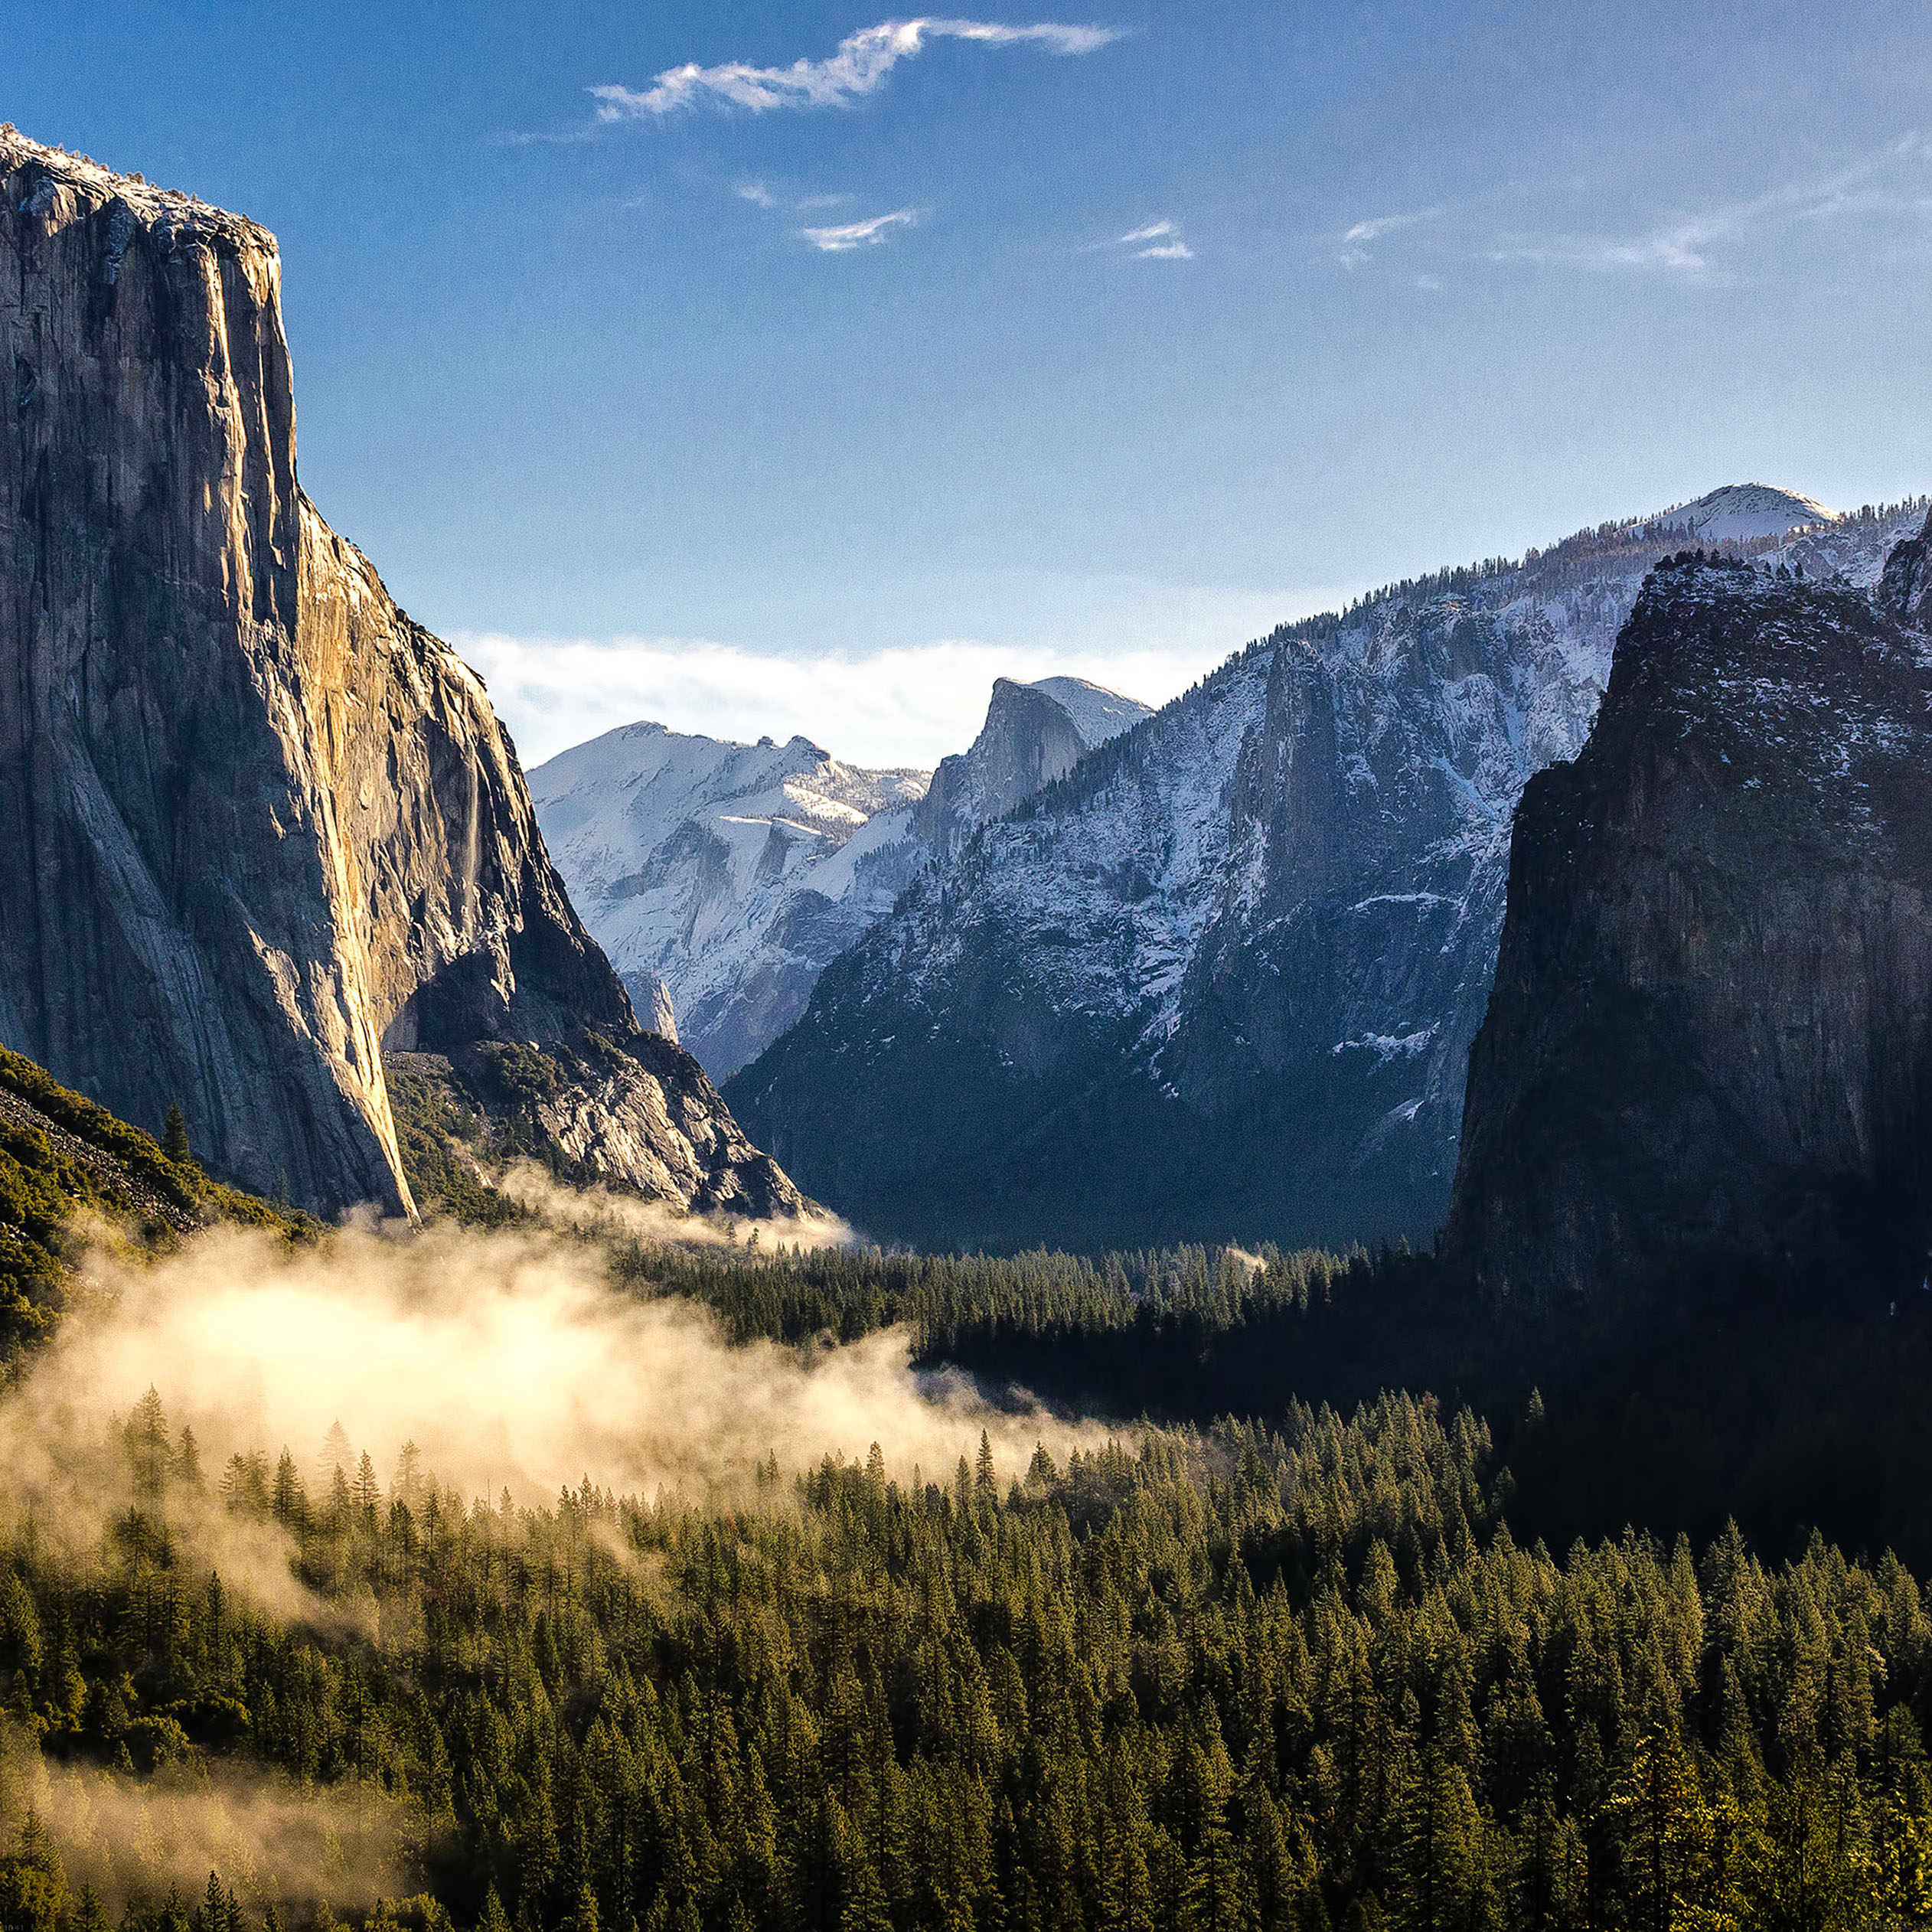 Fall Wallpaper For Ipad Air 2 Yosemite National Park Wallpapers For Iphone And Ipad